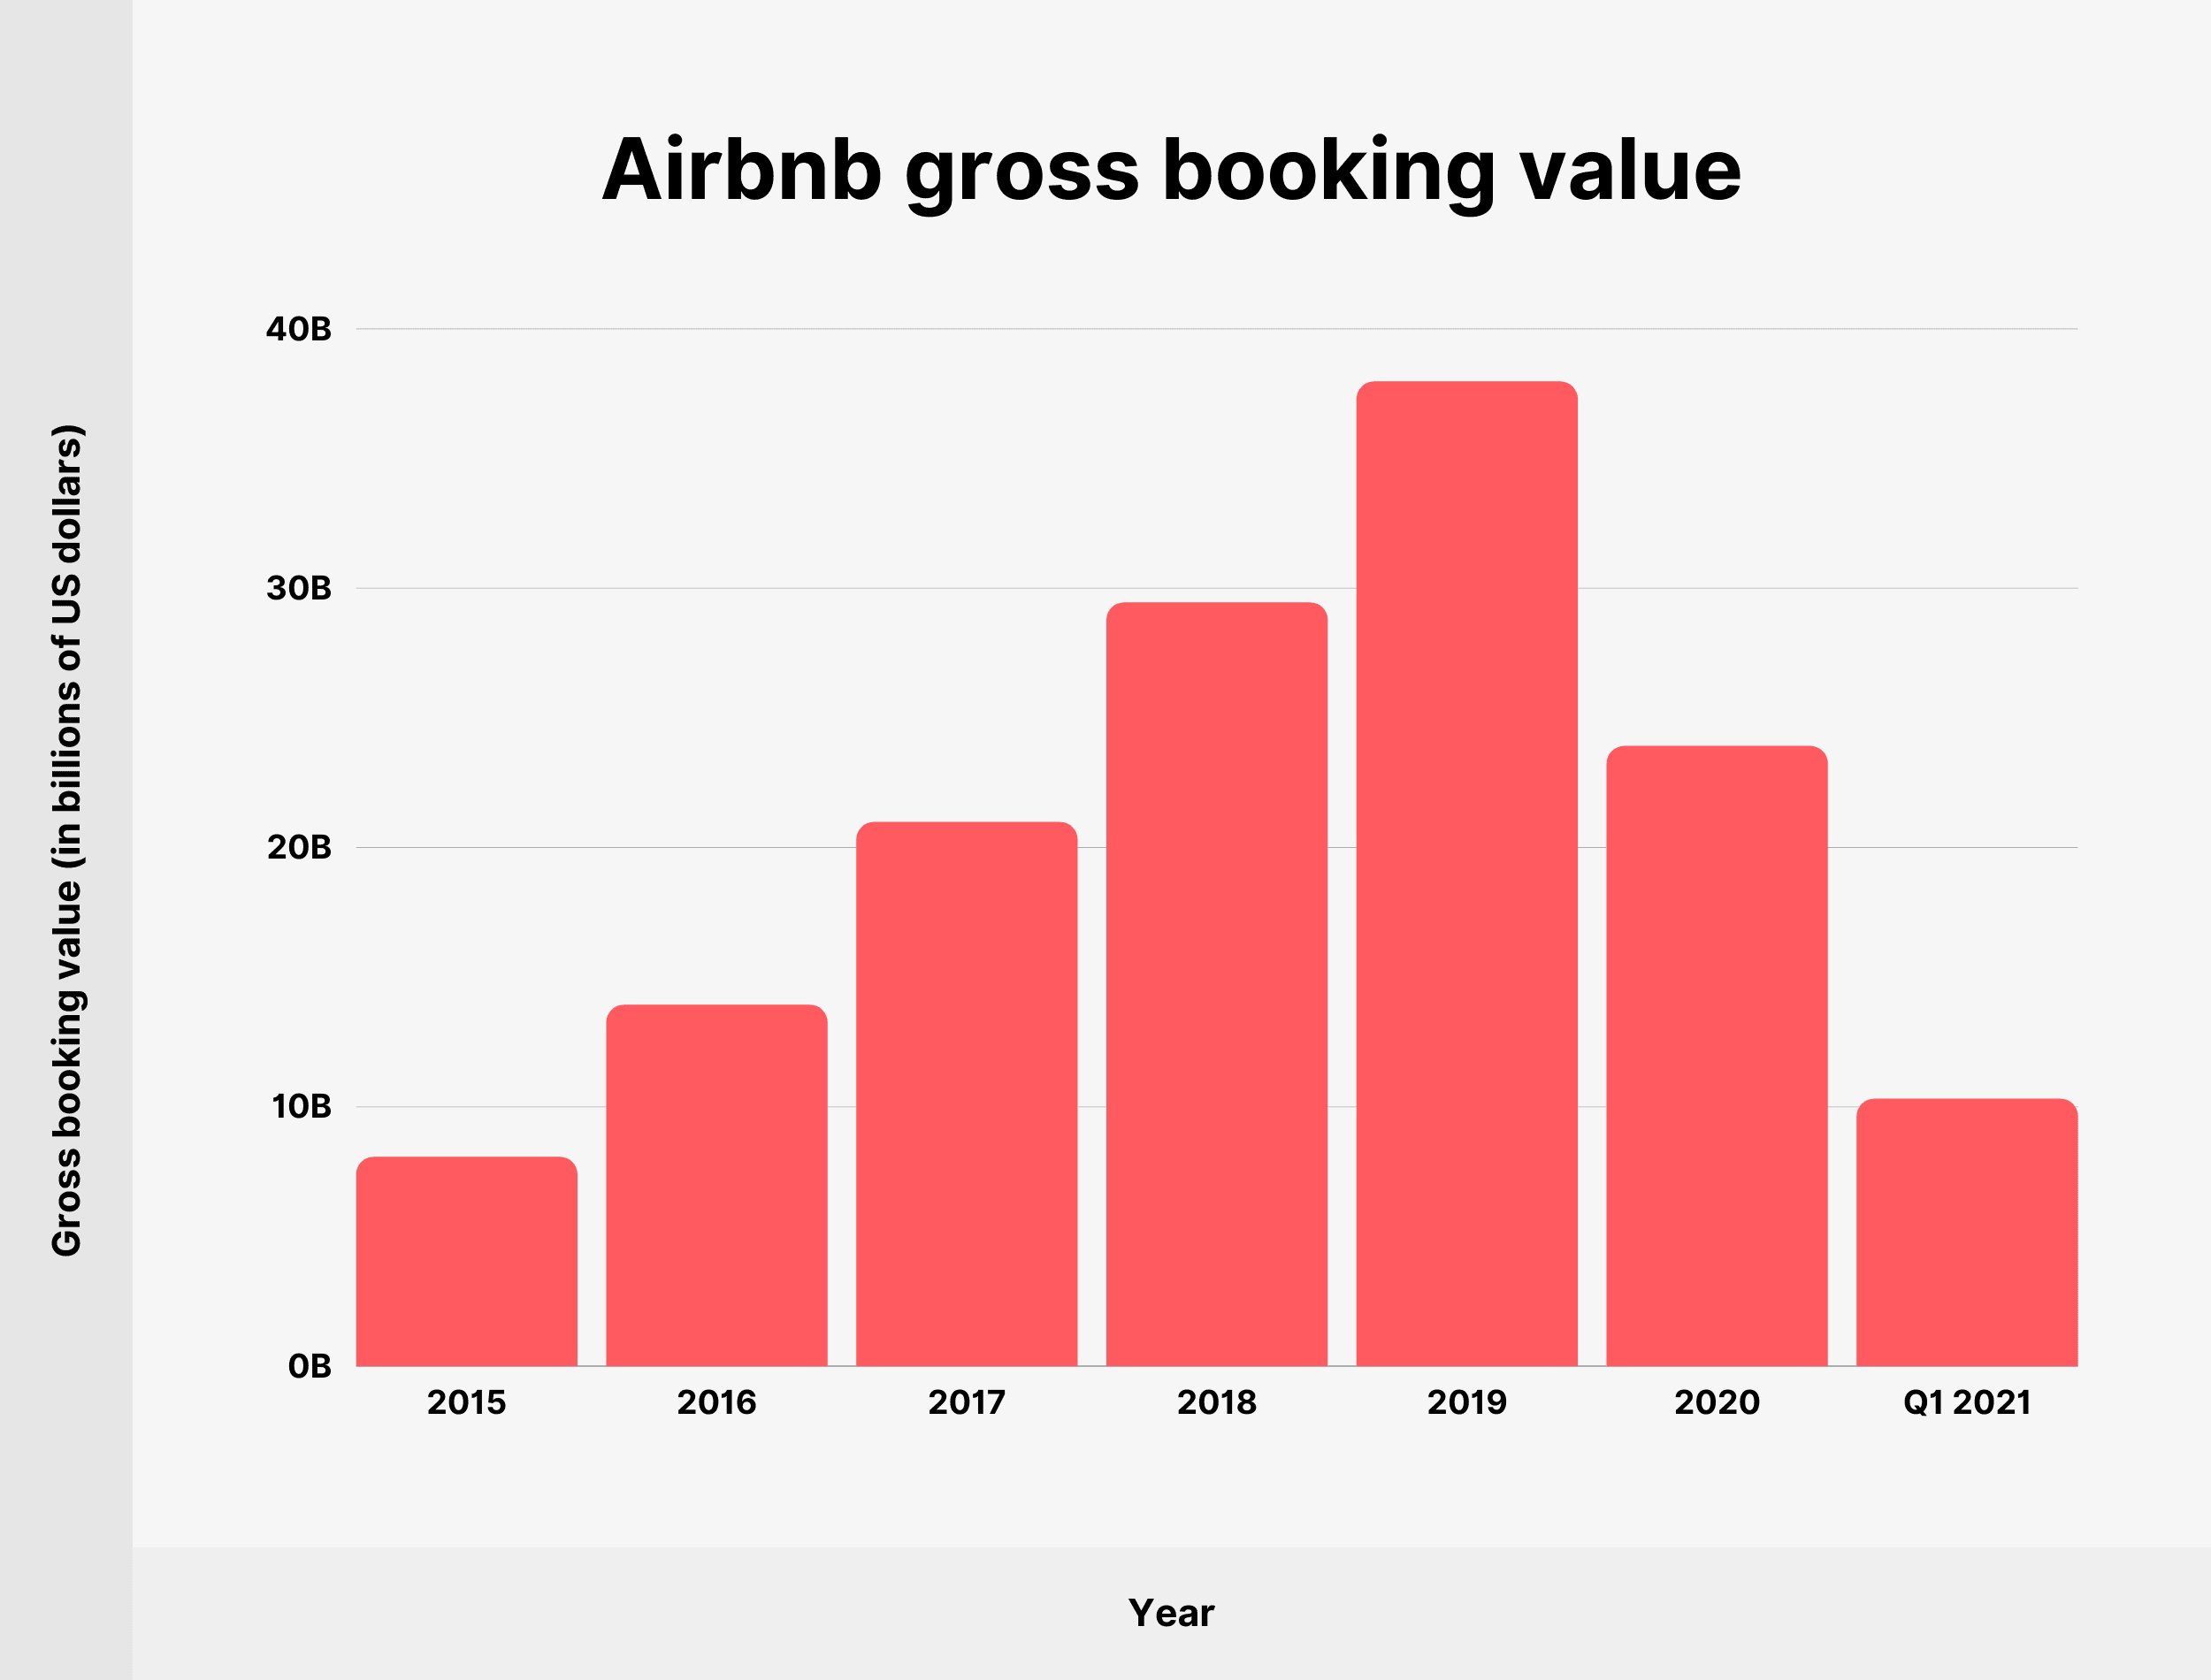 Airbnb gross booking value